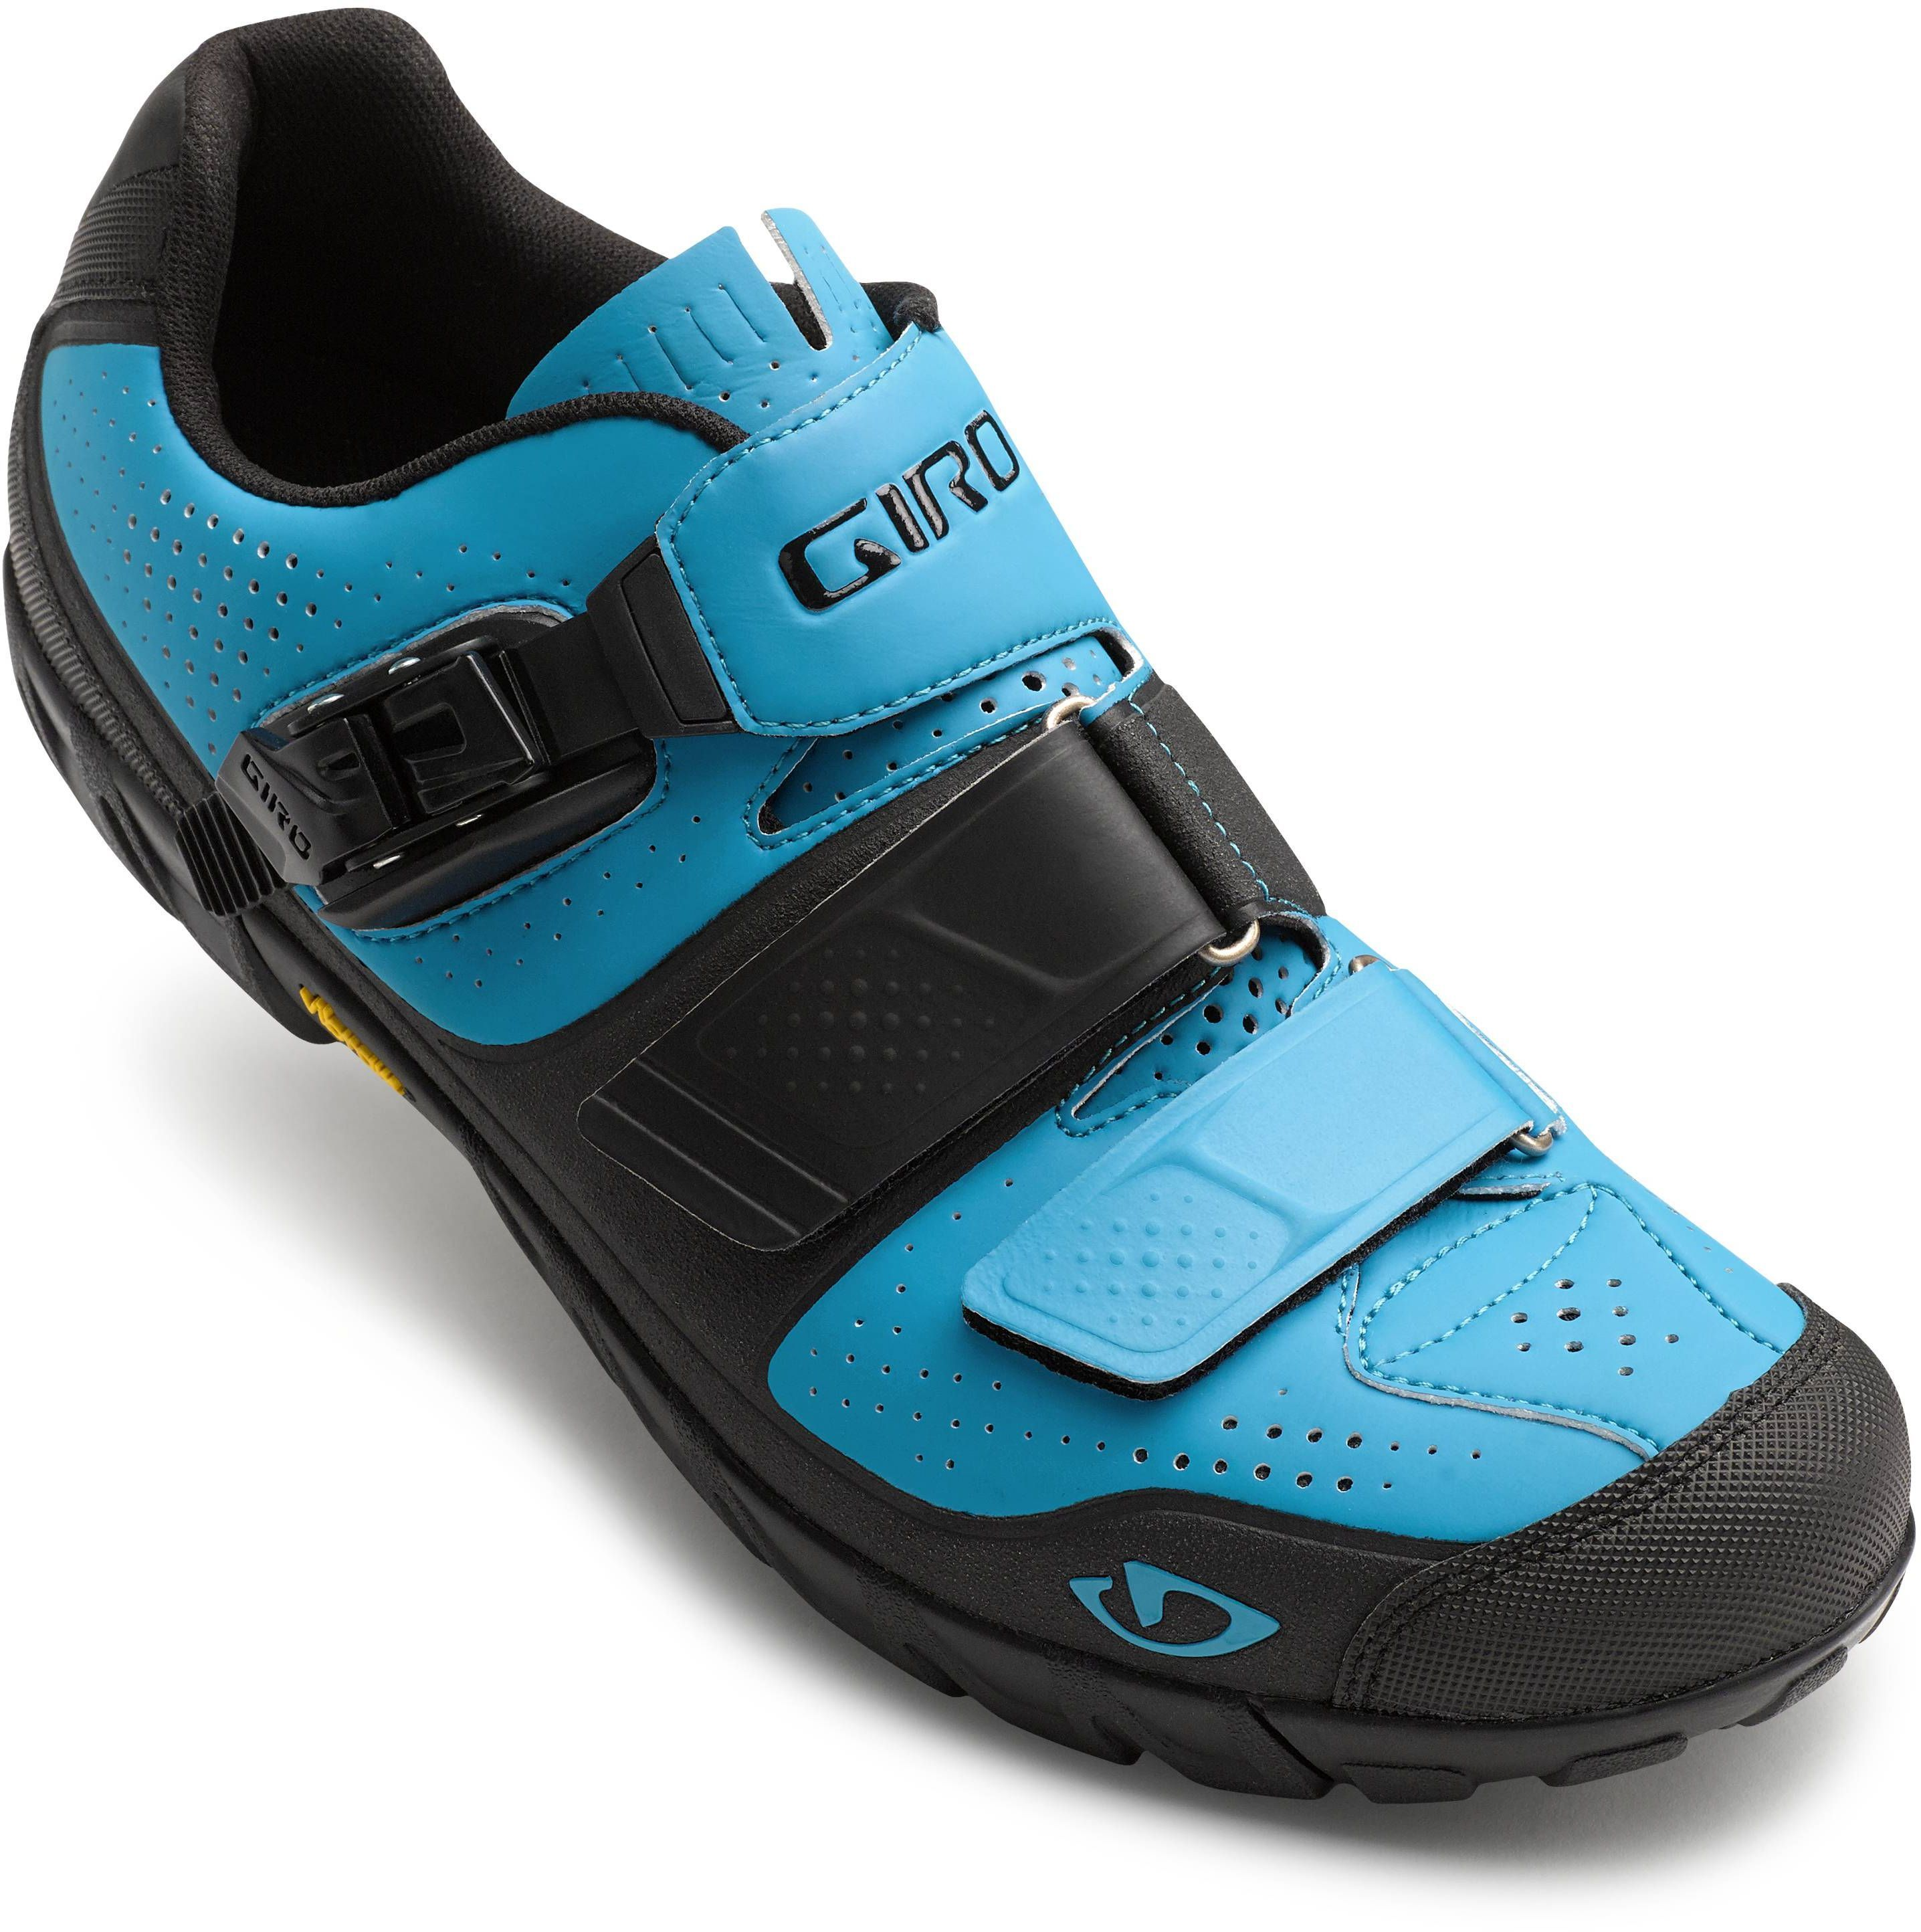 premium selection 29916 37a35 Giro Terraduro MTB-Schuhe blue jewel/black